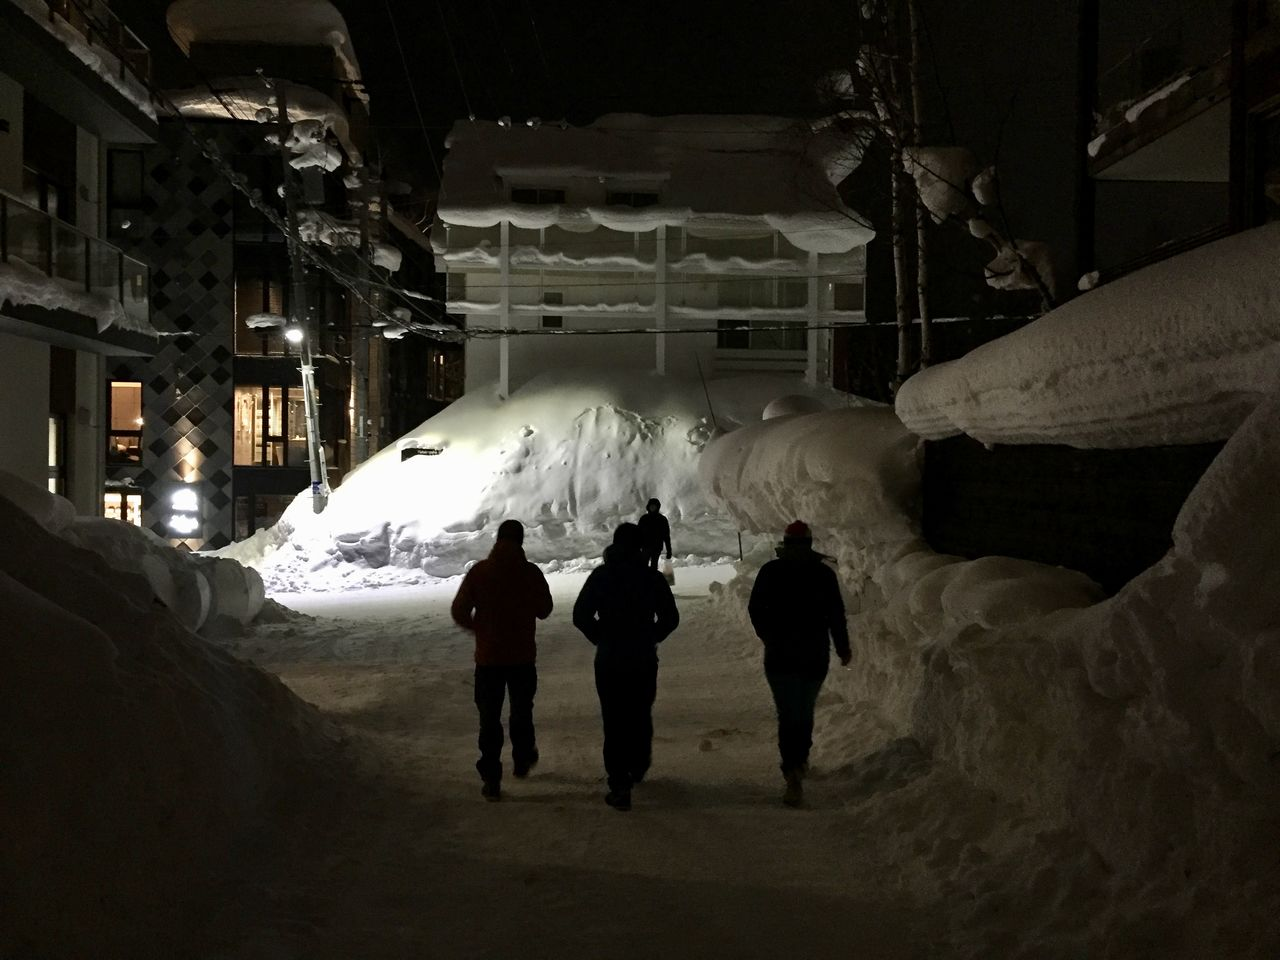 group of people, real people, night, built structure, winter, architecture, building exterior, lifestyles, rear view, men, snow, cold temperature, people, leisure activity, city, walking, group, women, warm clothing